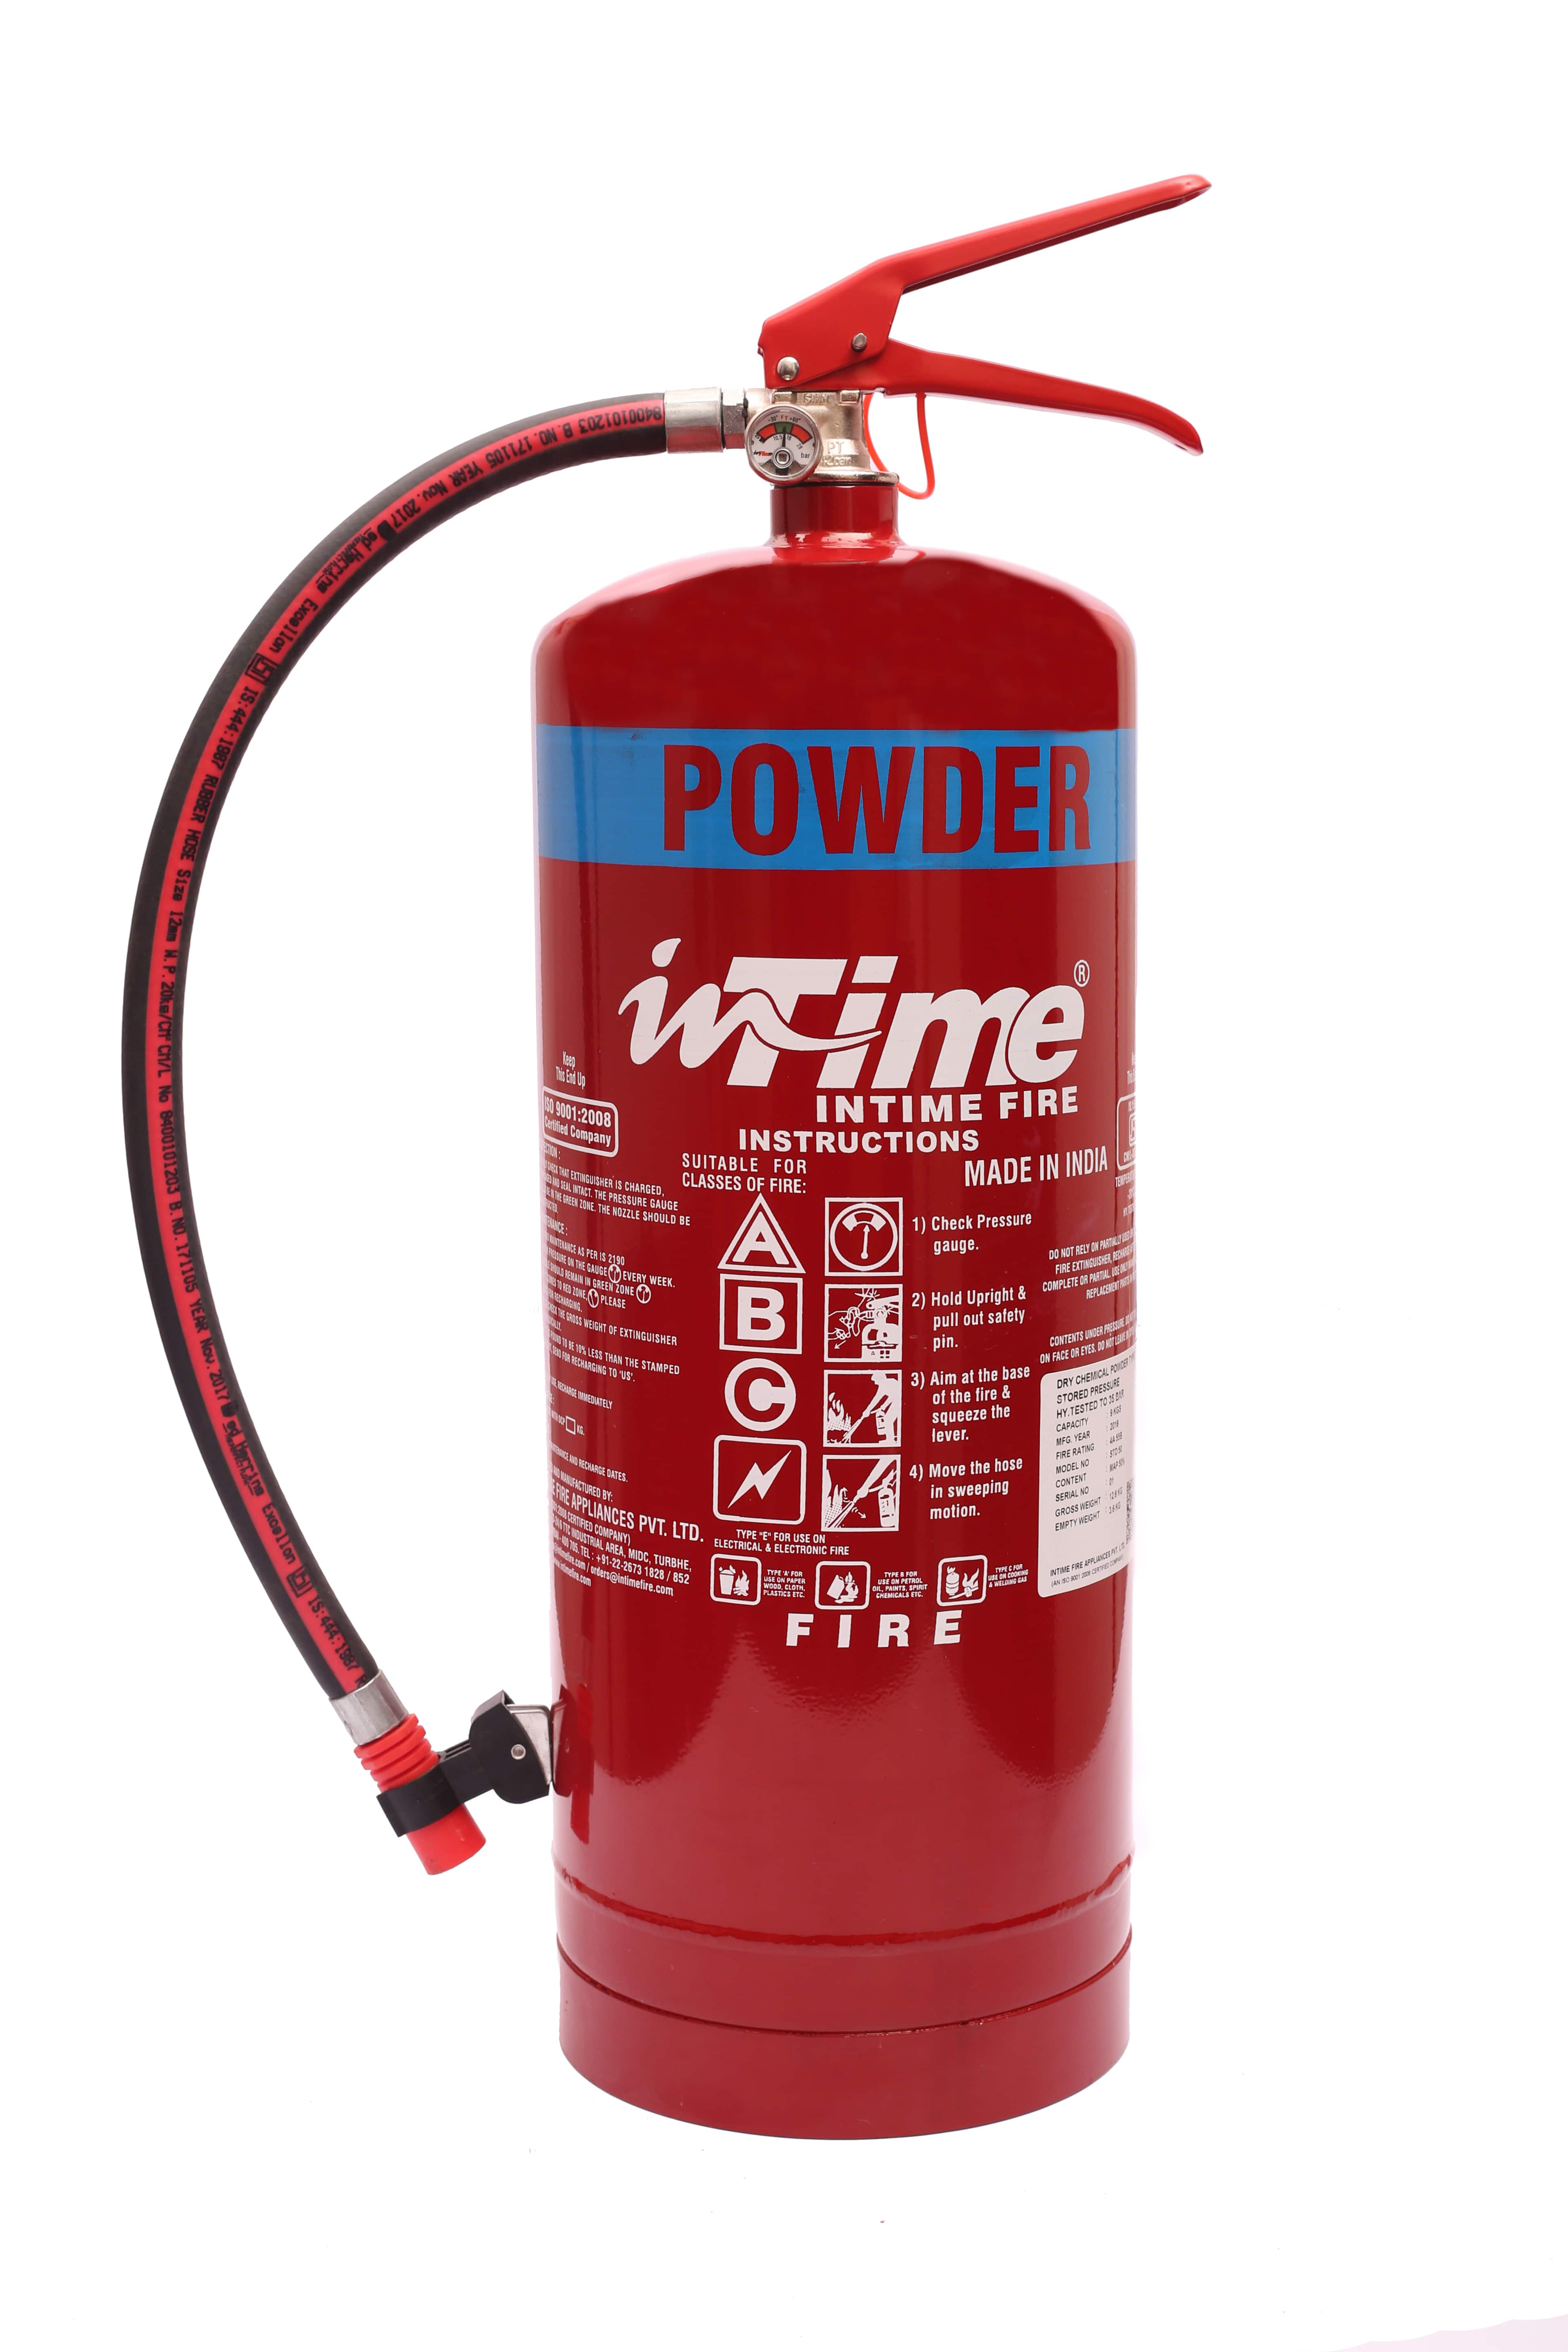 Stored Pressure Powder Type Fire Extinguishers